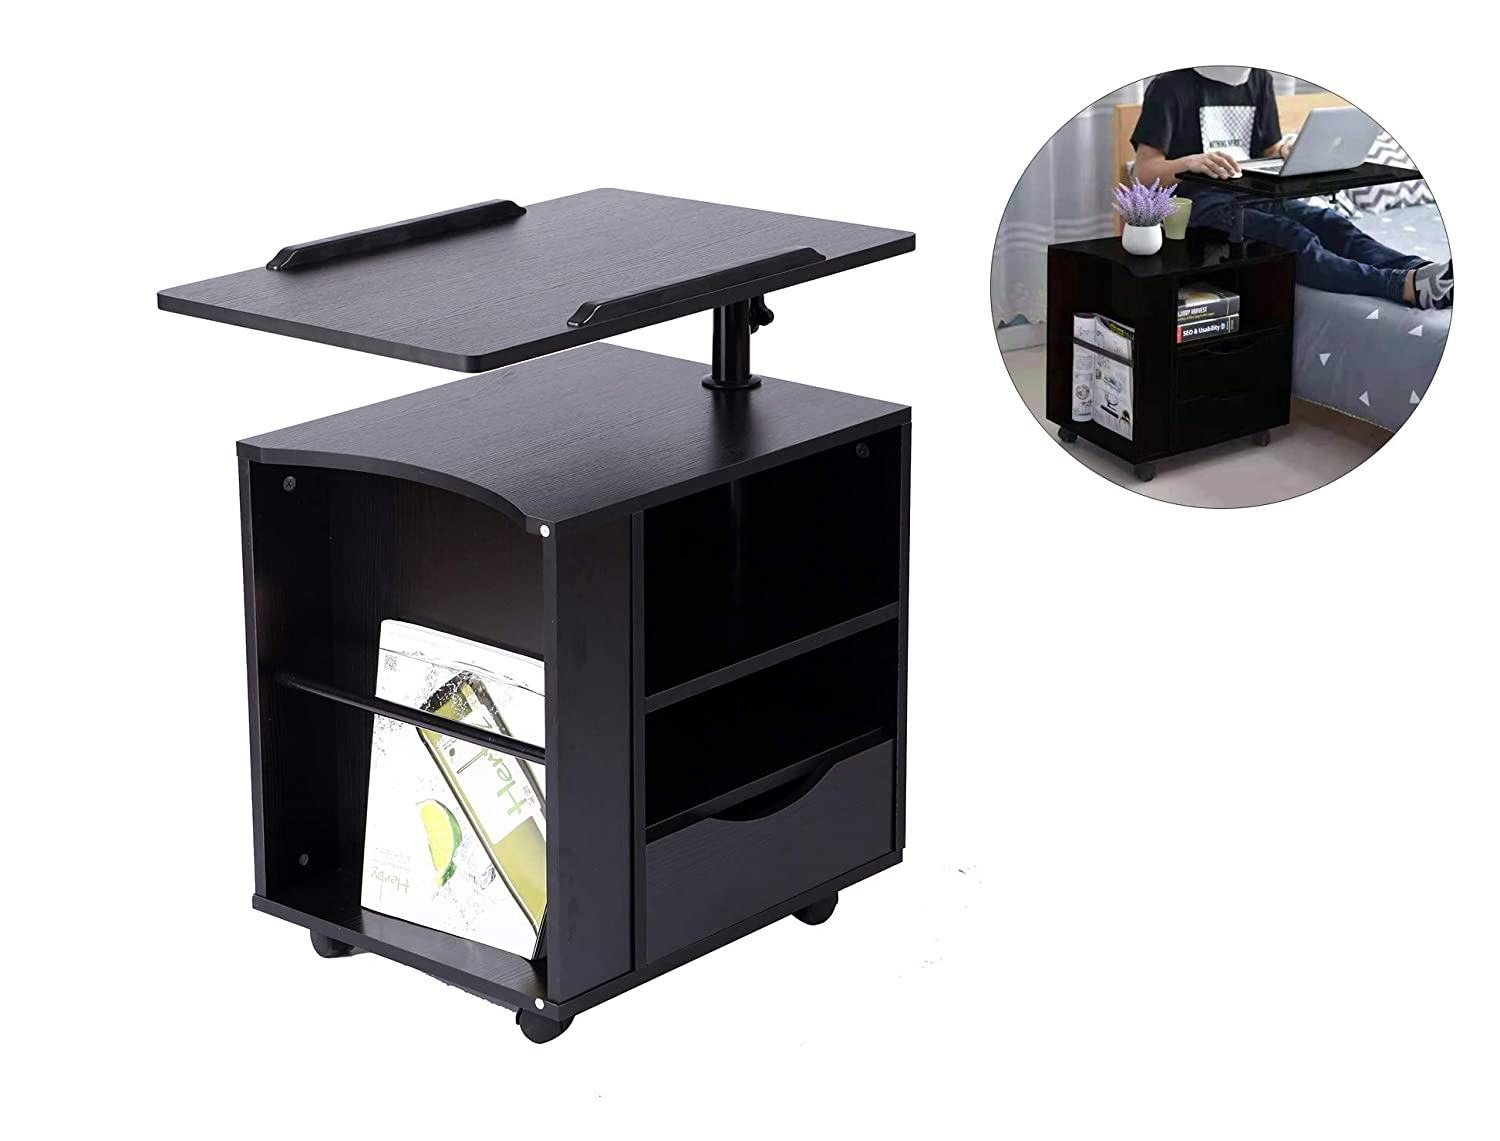 BarleyHome Functional Bedside Table Adjustable & Swiel Wooden Nightstand with Drawers, Rolling Laptop Desk Computer Table, Black (Right Side)